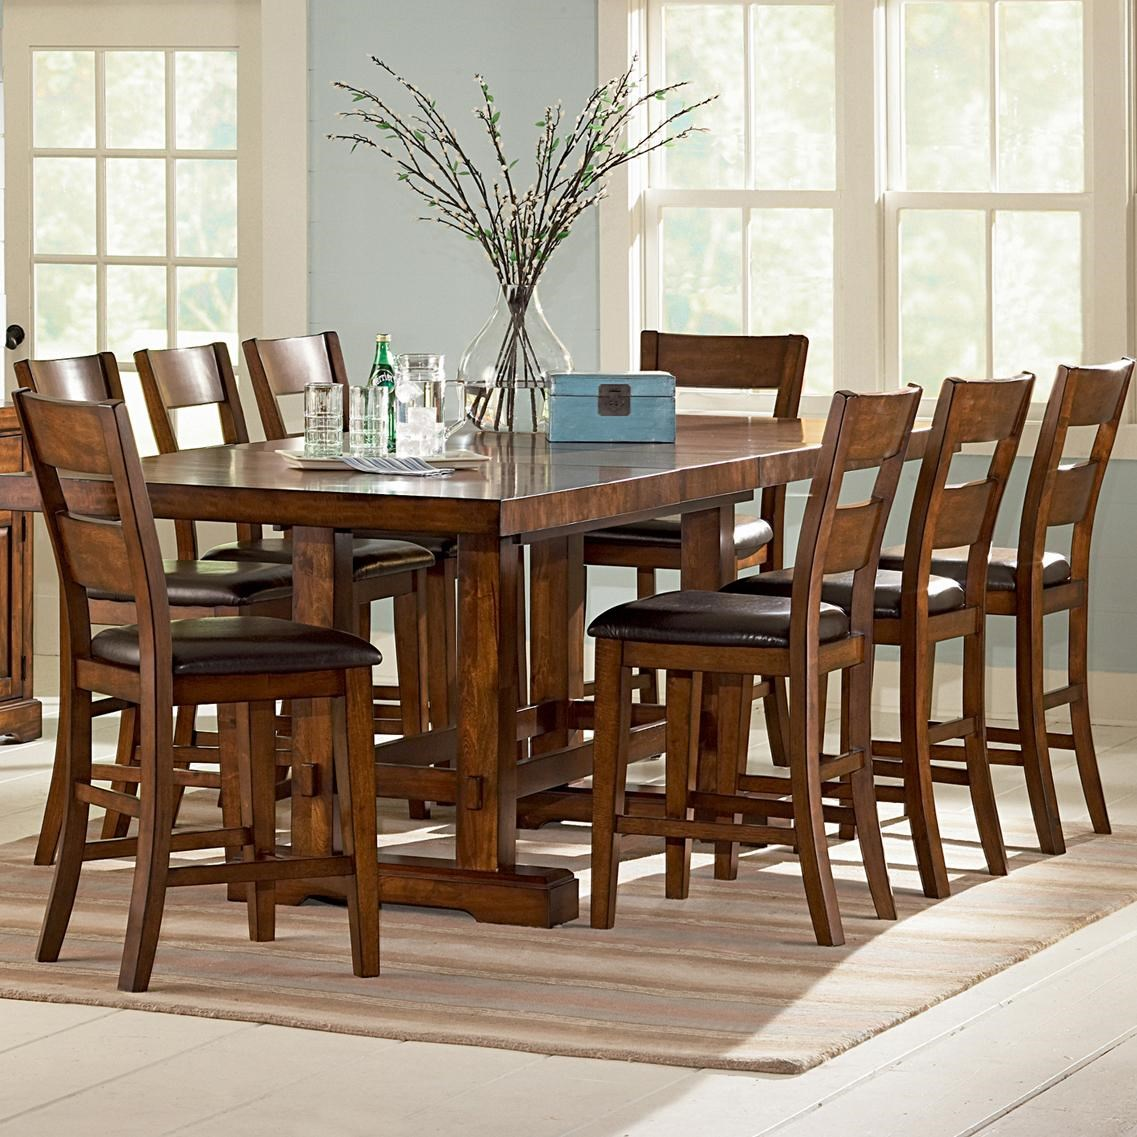 Steve Silver Zappa 9 Piece Counter Height Table & Chair